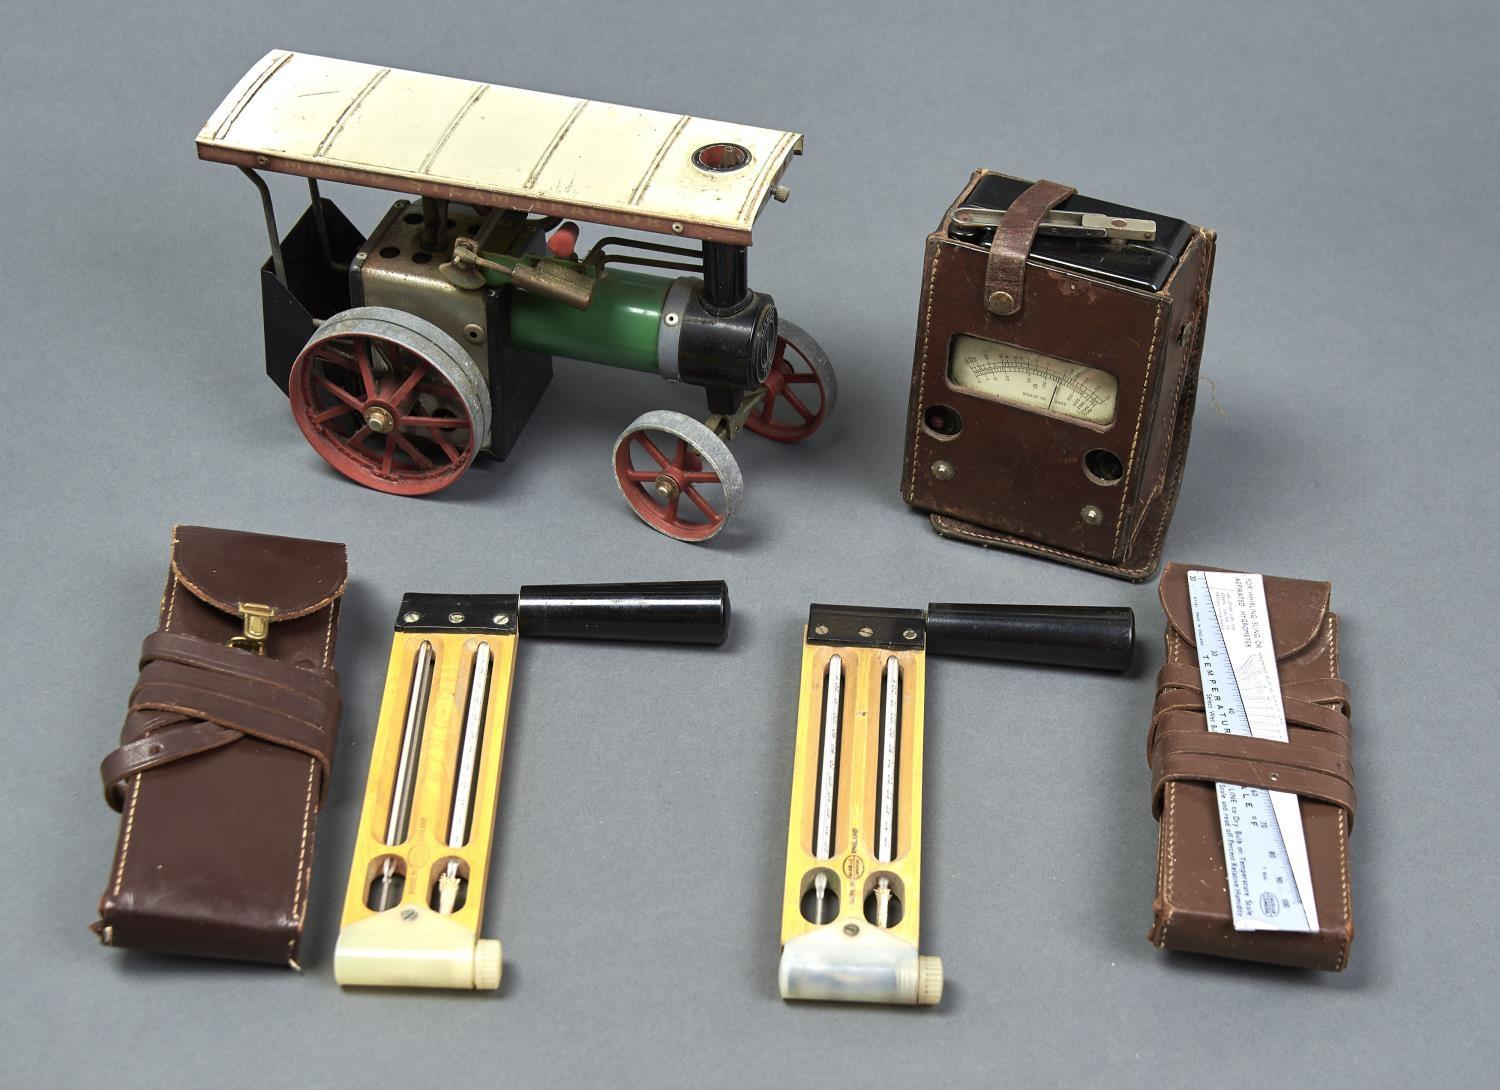 A MAMOD TRACTION ENGINE, VOLTAGE TESTER, TEMPERATURE TOOLS AND SLIDE RULE